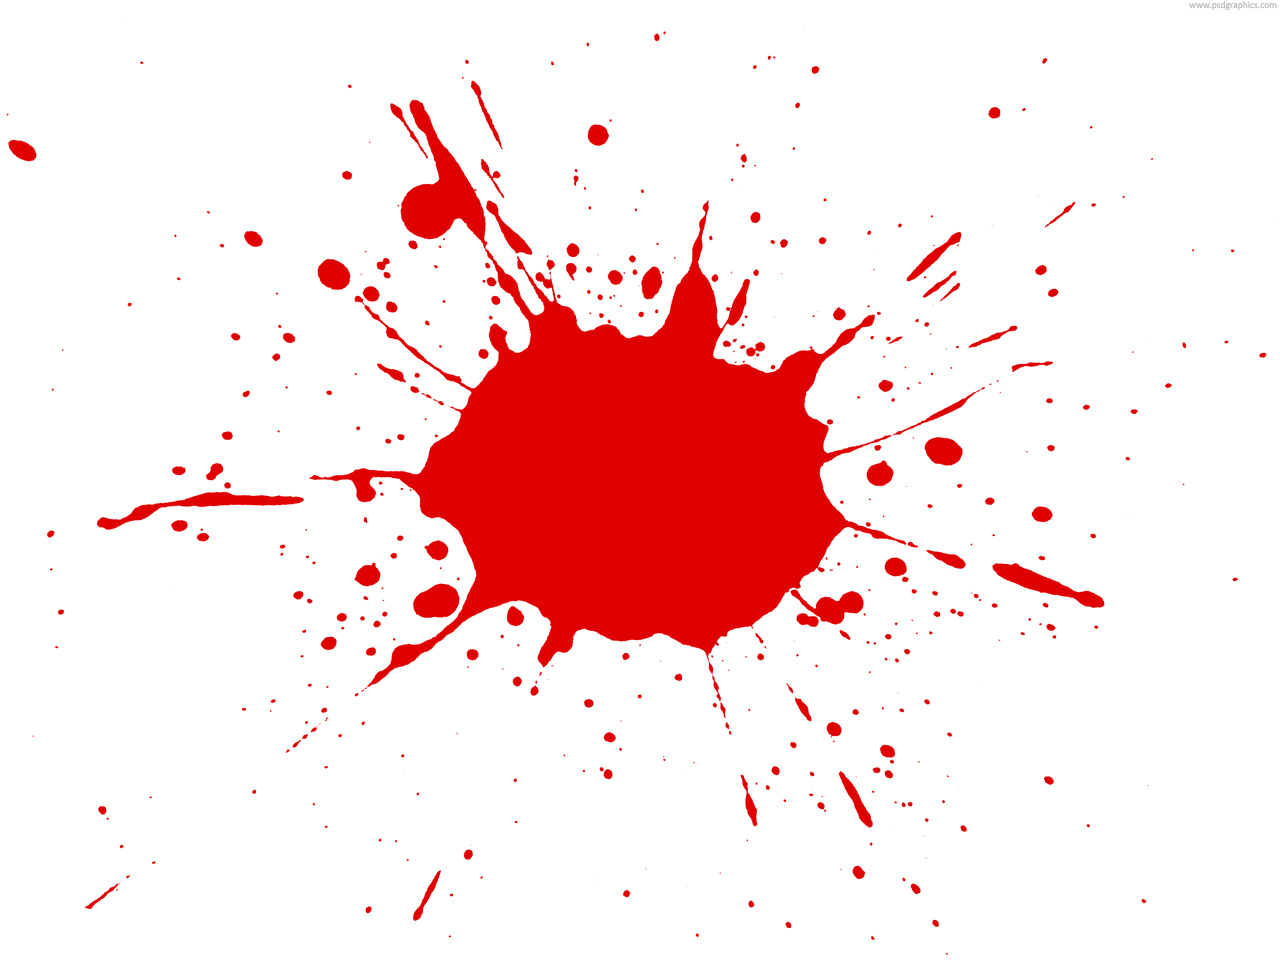 Red Paint Splatter Png image #33303 - Splatter PNG